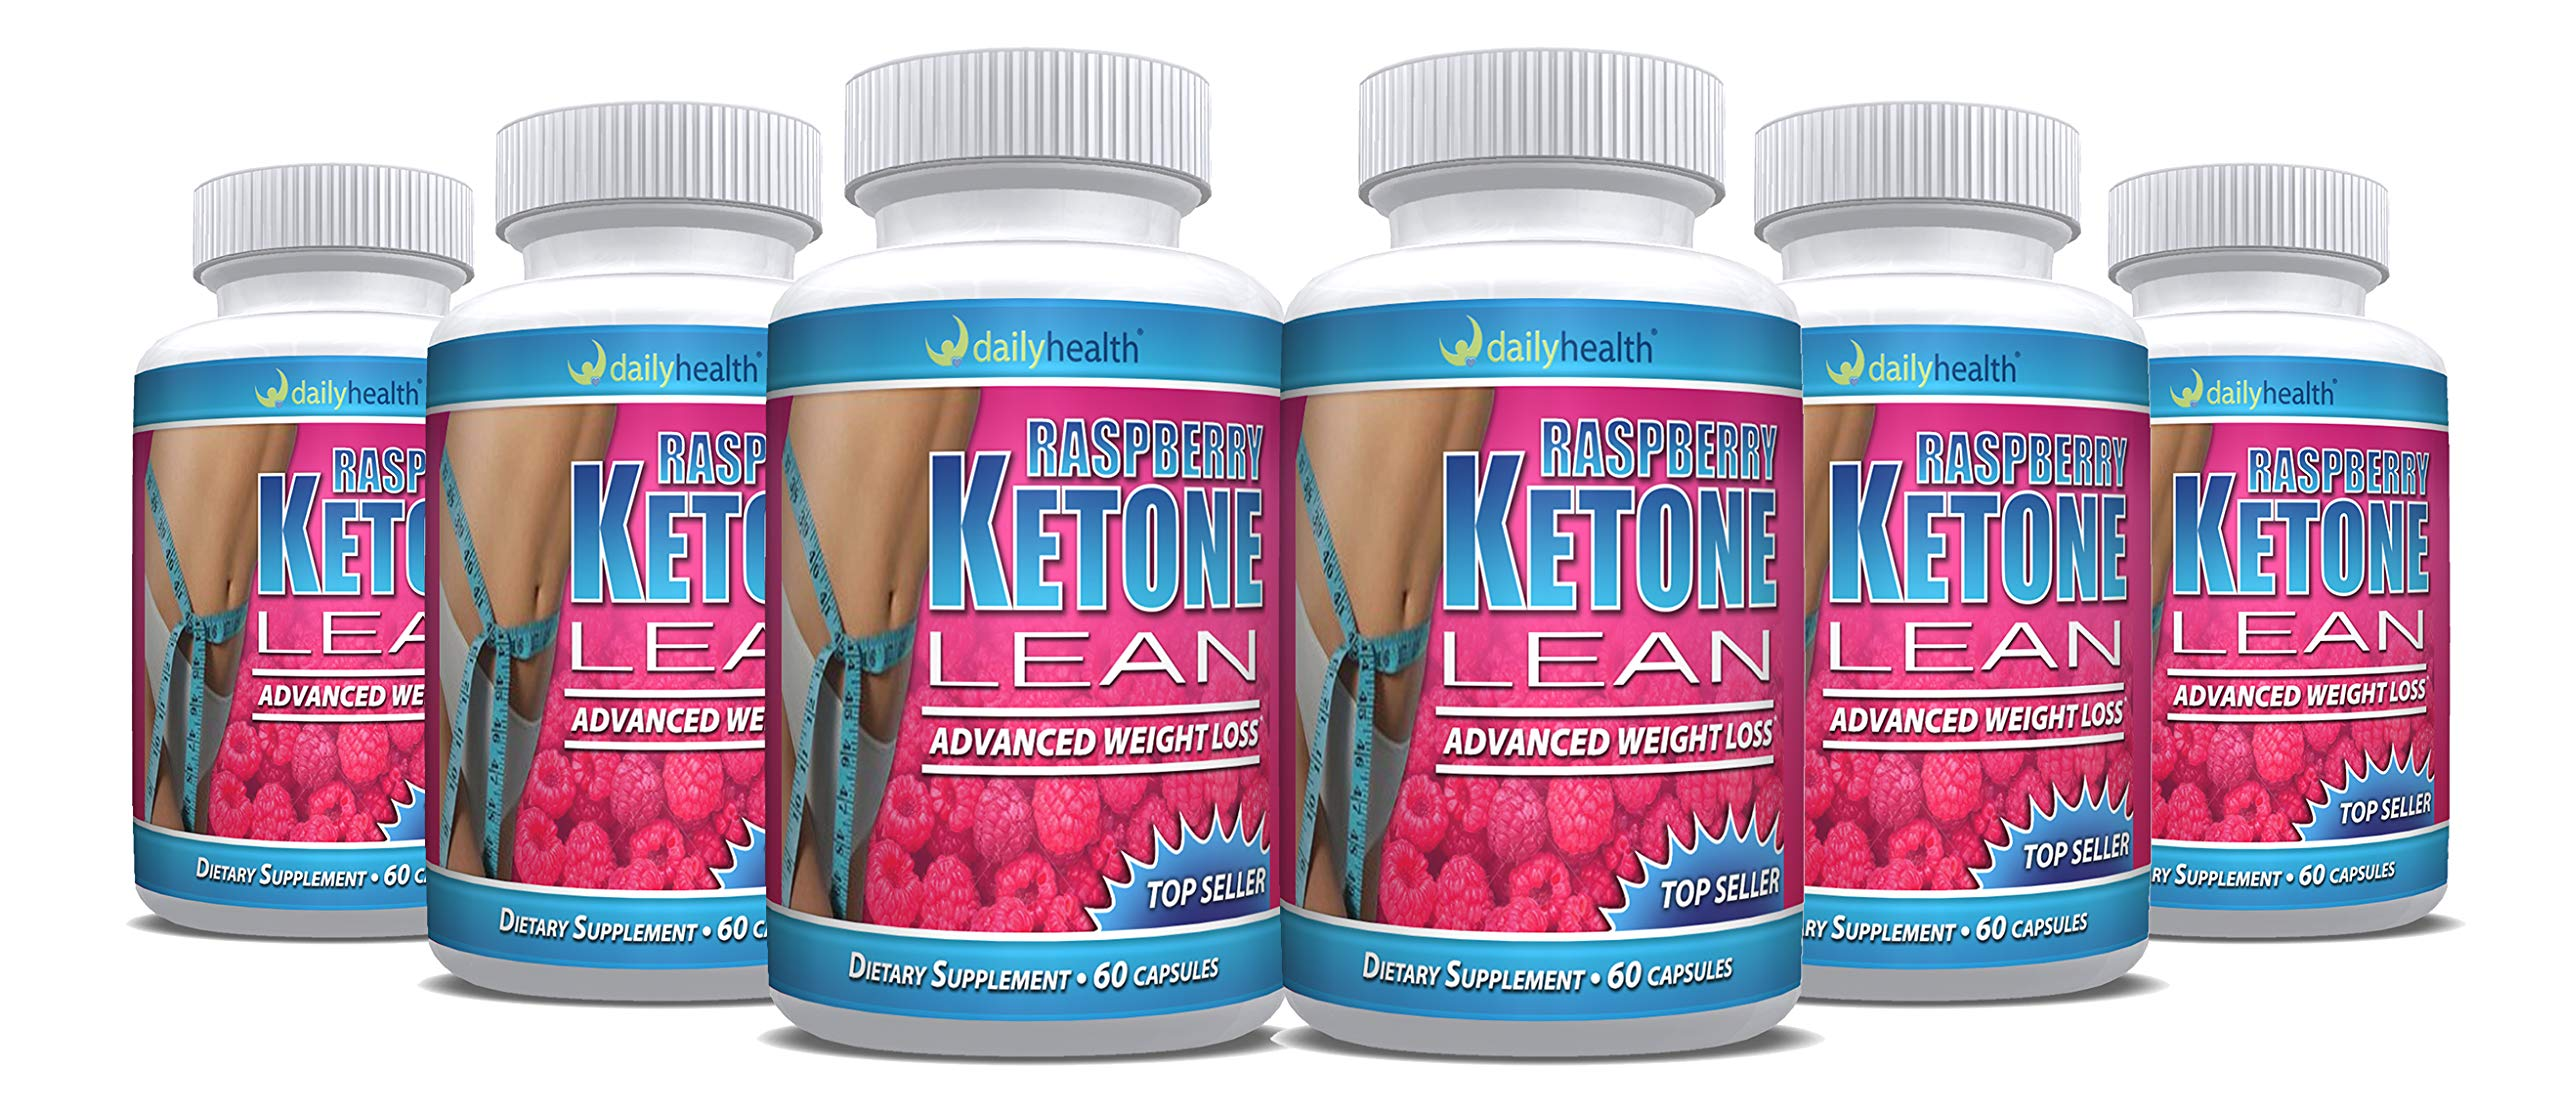 Raspberry Ketones Lean African Mango Blend 1200 mg per Serving 60 Capsules Weight Loss Diet Management Support Supplement (6)